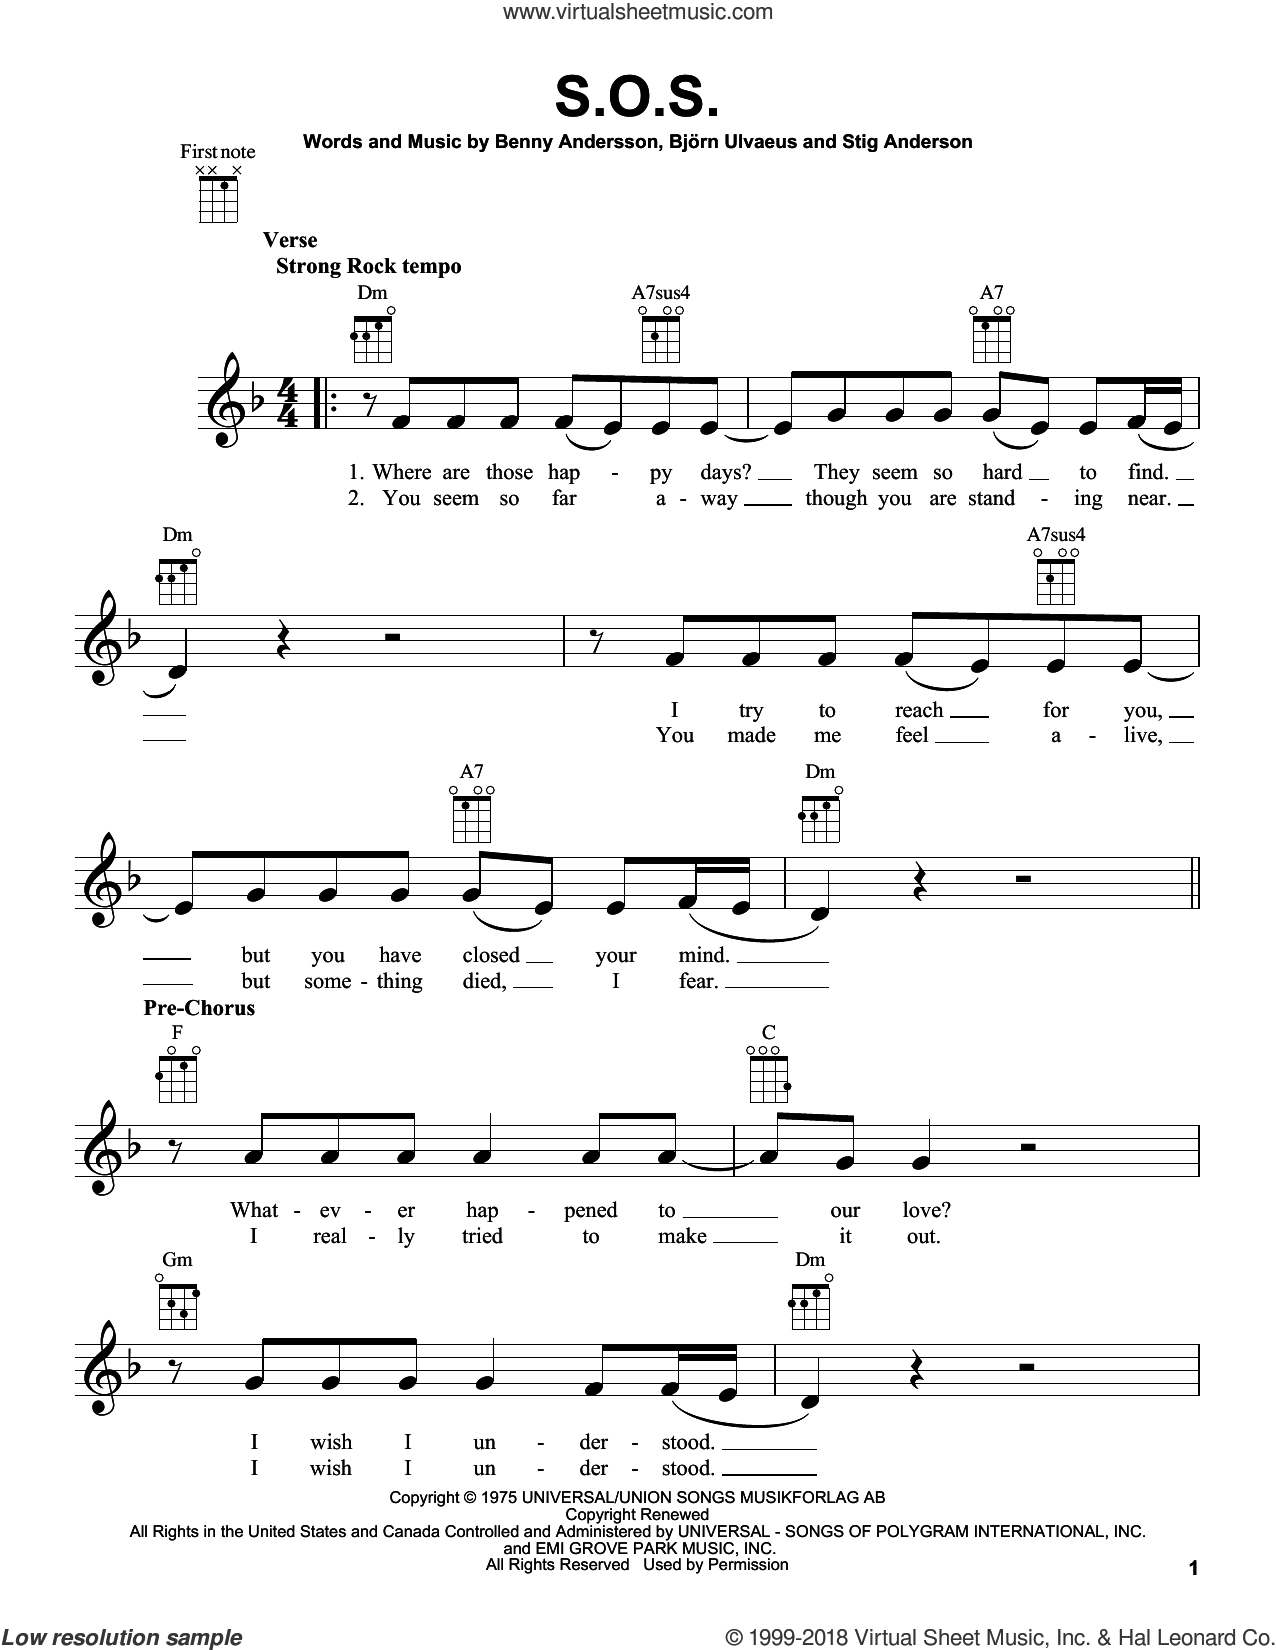 S.O.S. sheet music for ukulele by Stig Anderson